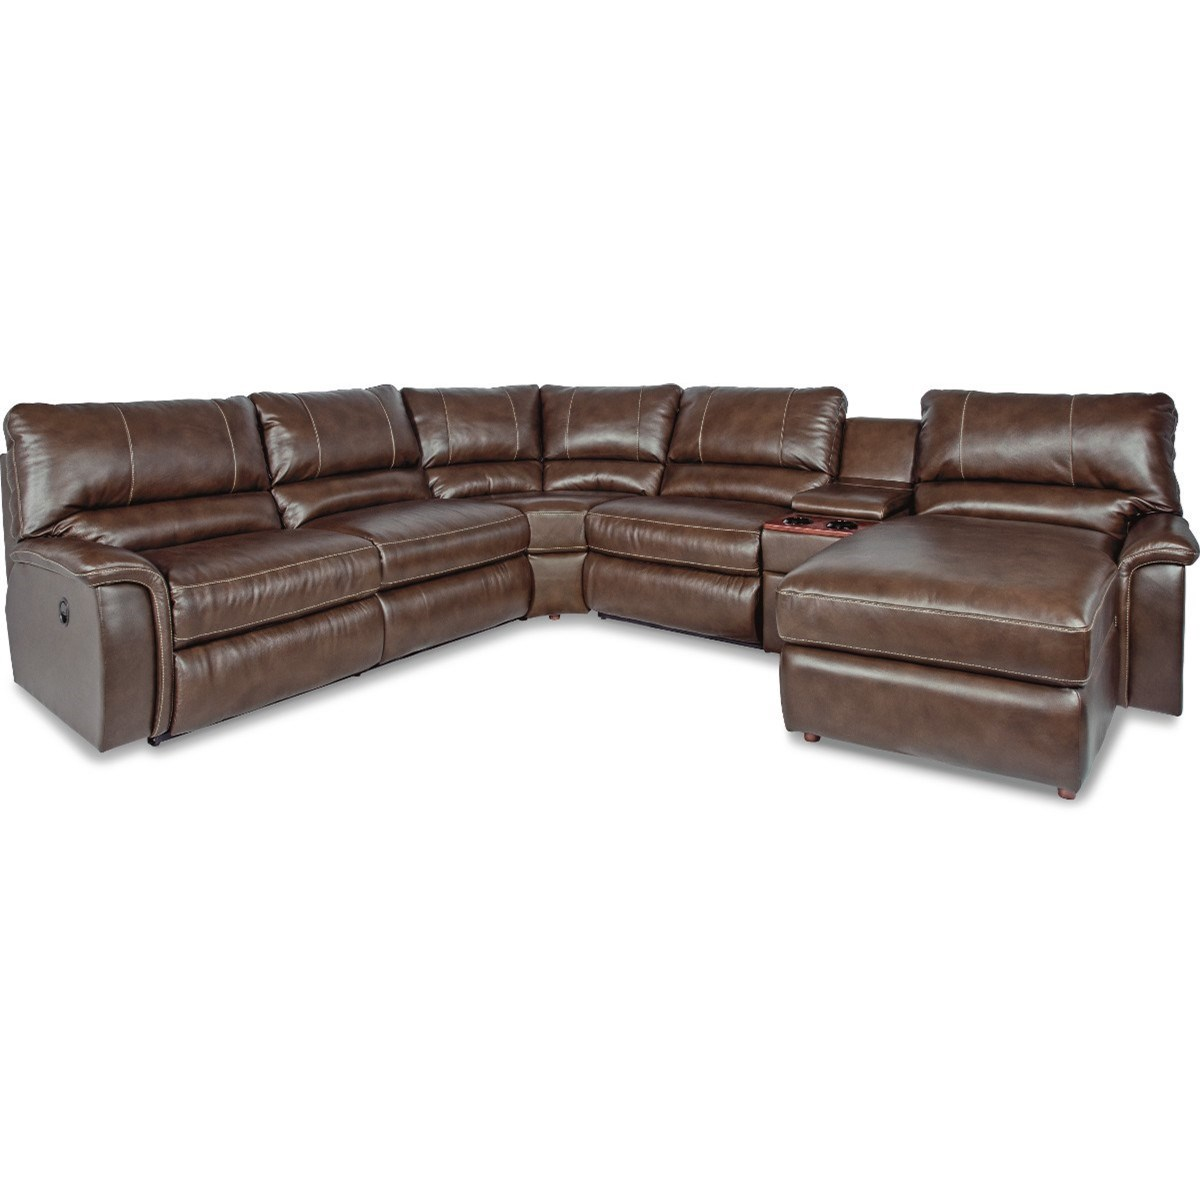 ASPEN 6 Pc Reclining Sectional Sofa by La-Z-Boy at Home Furnishings Direct